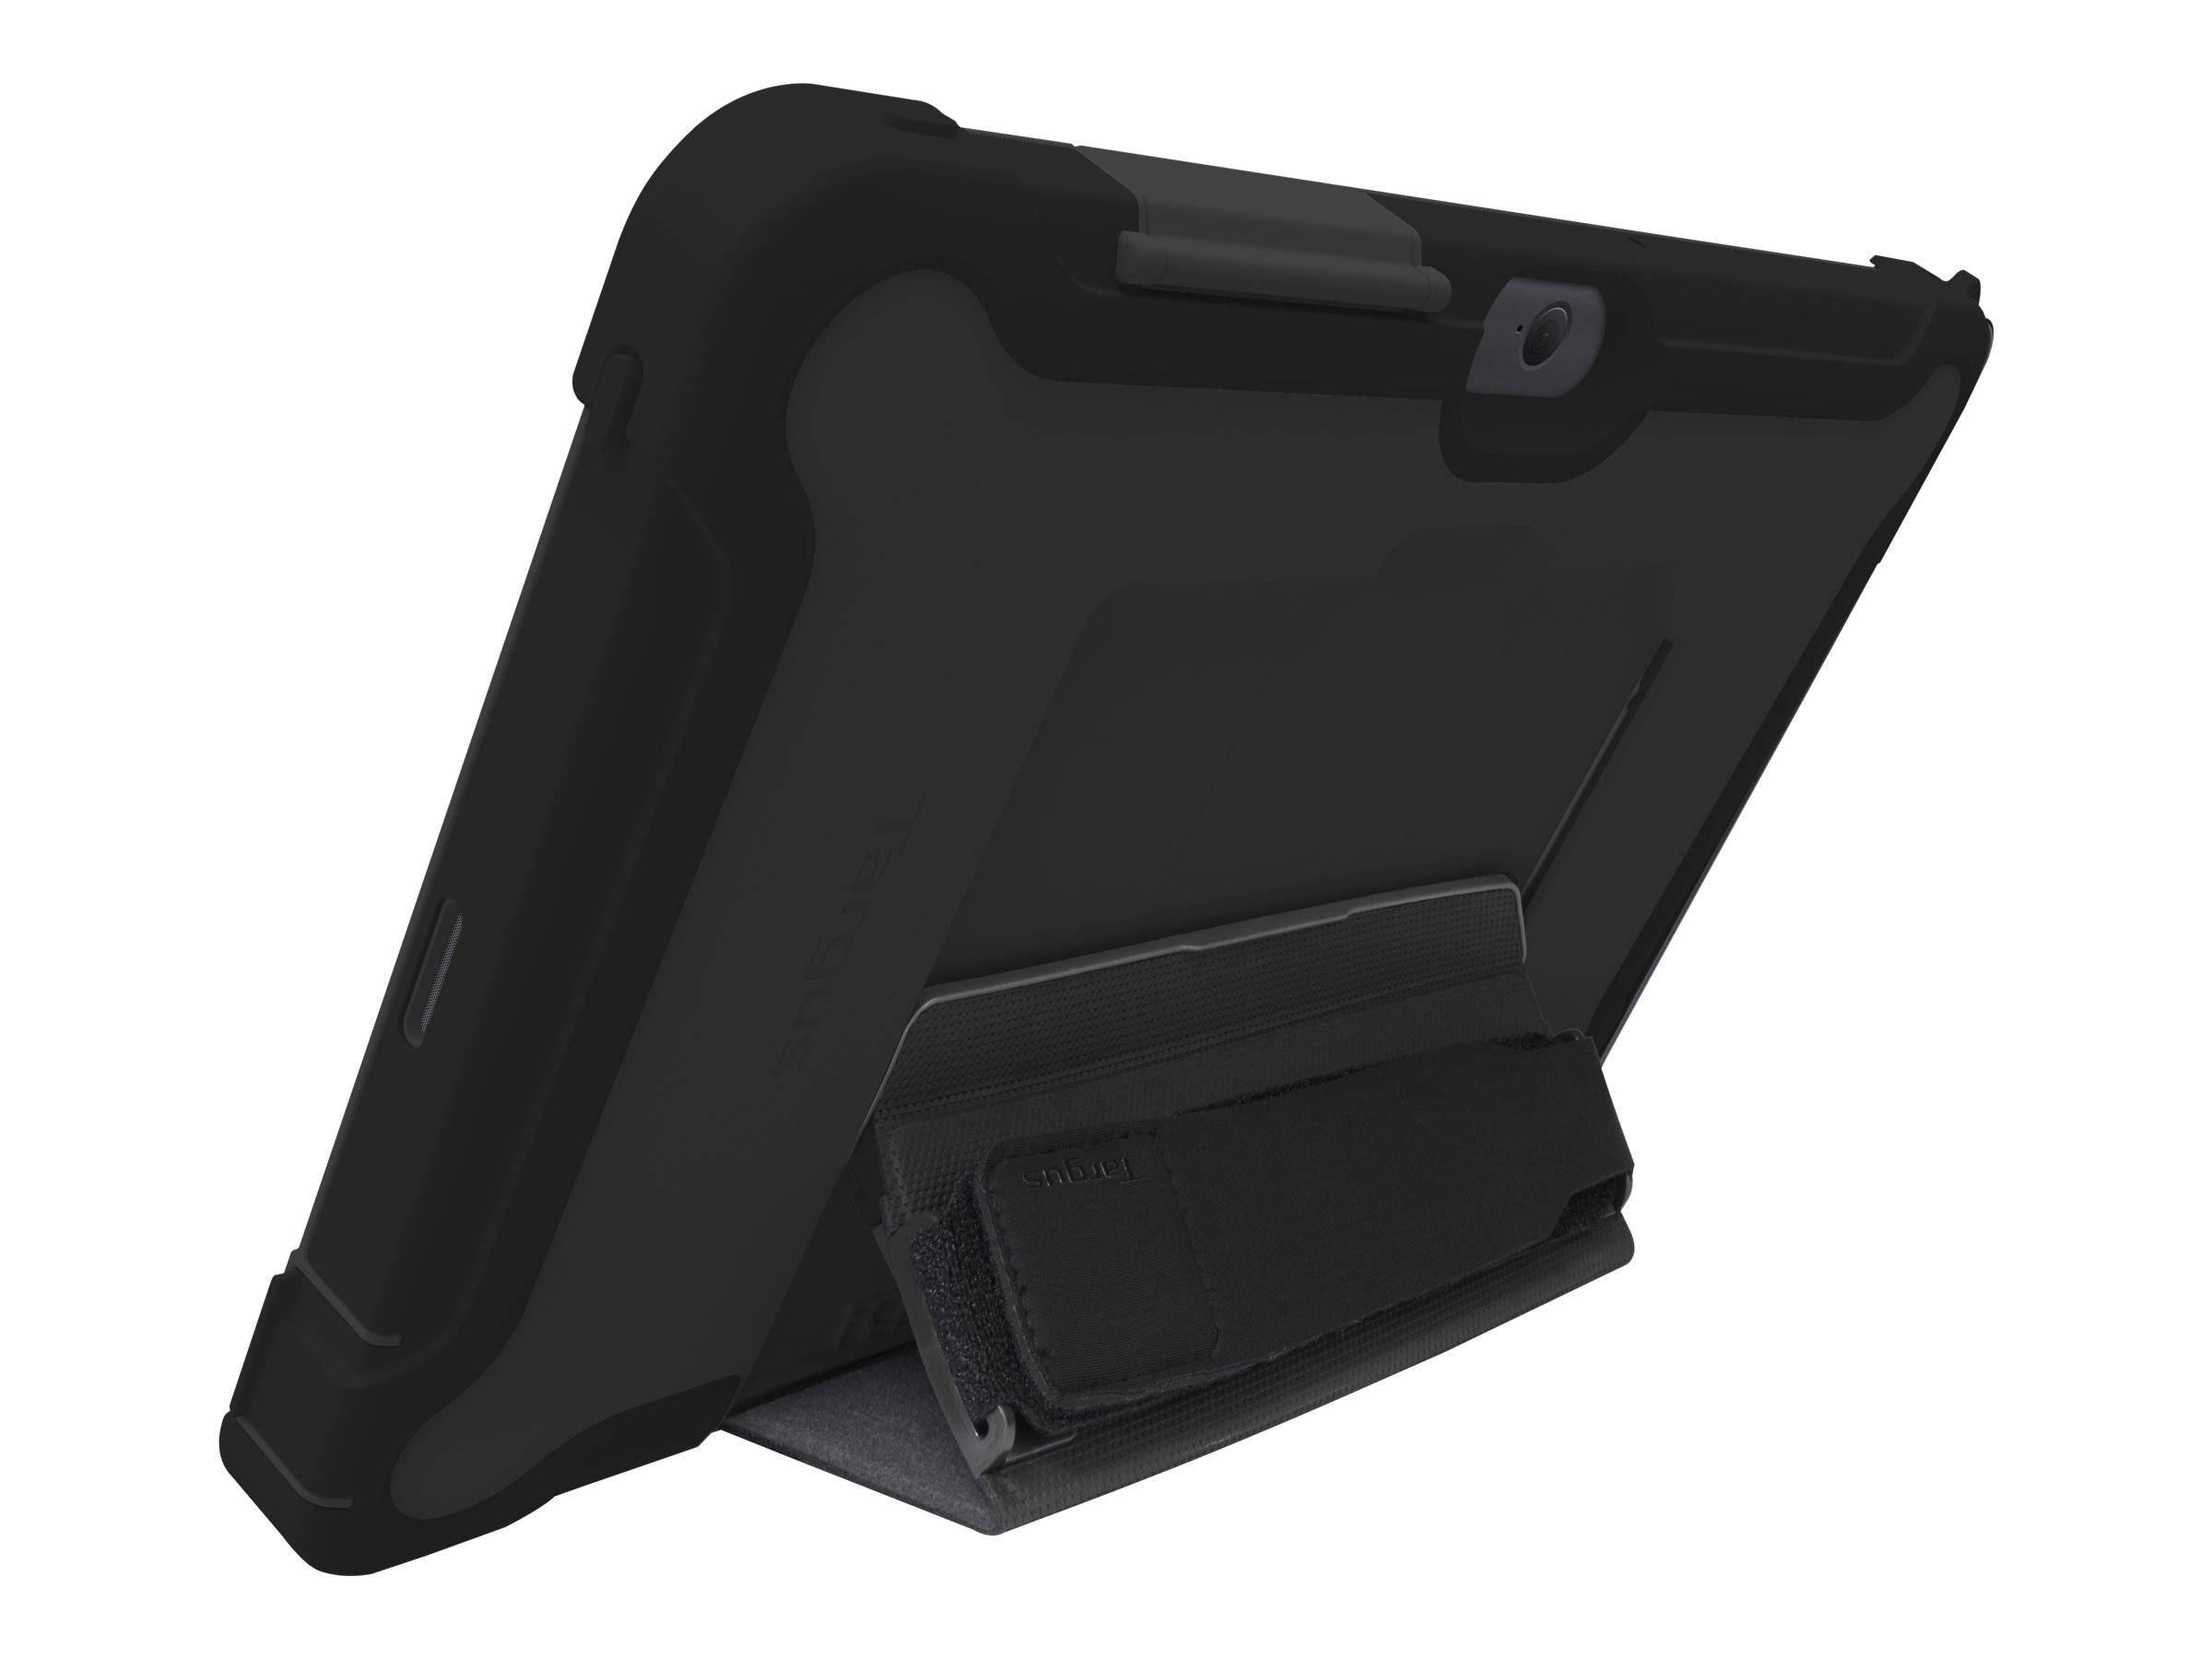 Targus SafePort Rugged Max Pro Case for For Dell Latitude 11 2-in-1 Model 5175, THD463USZ